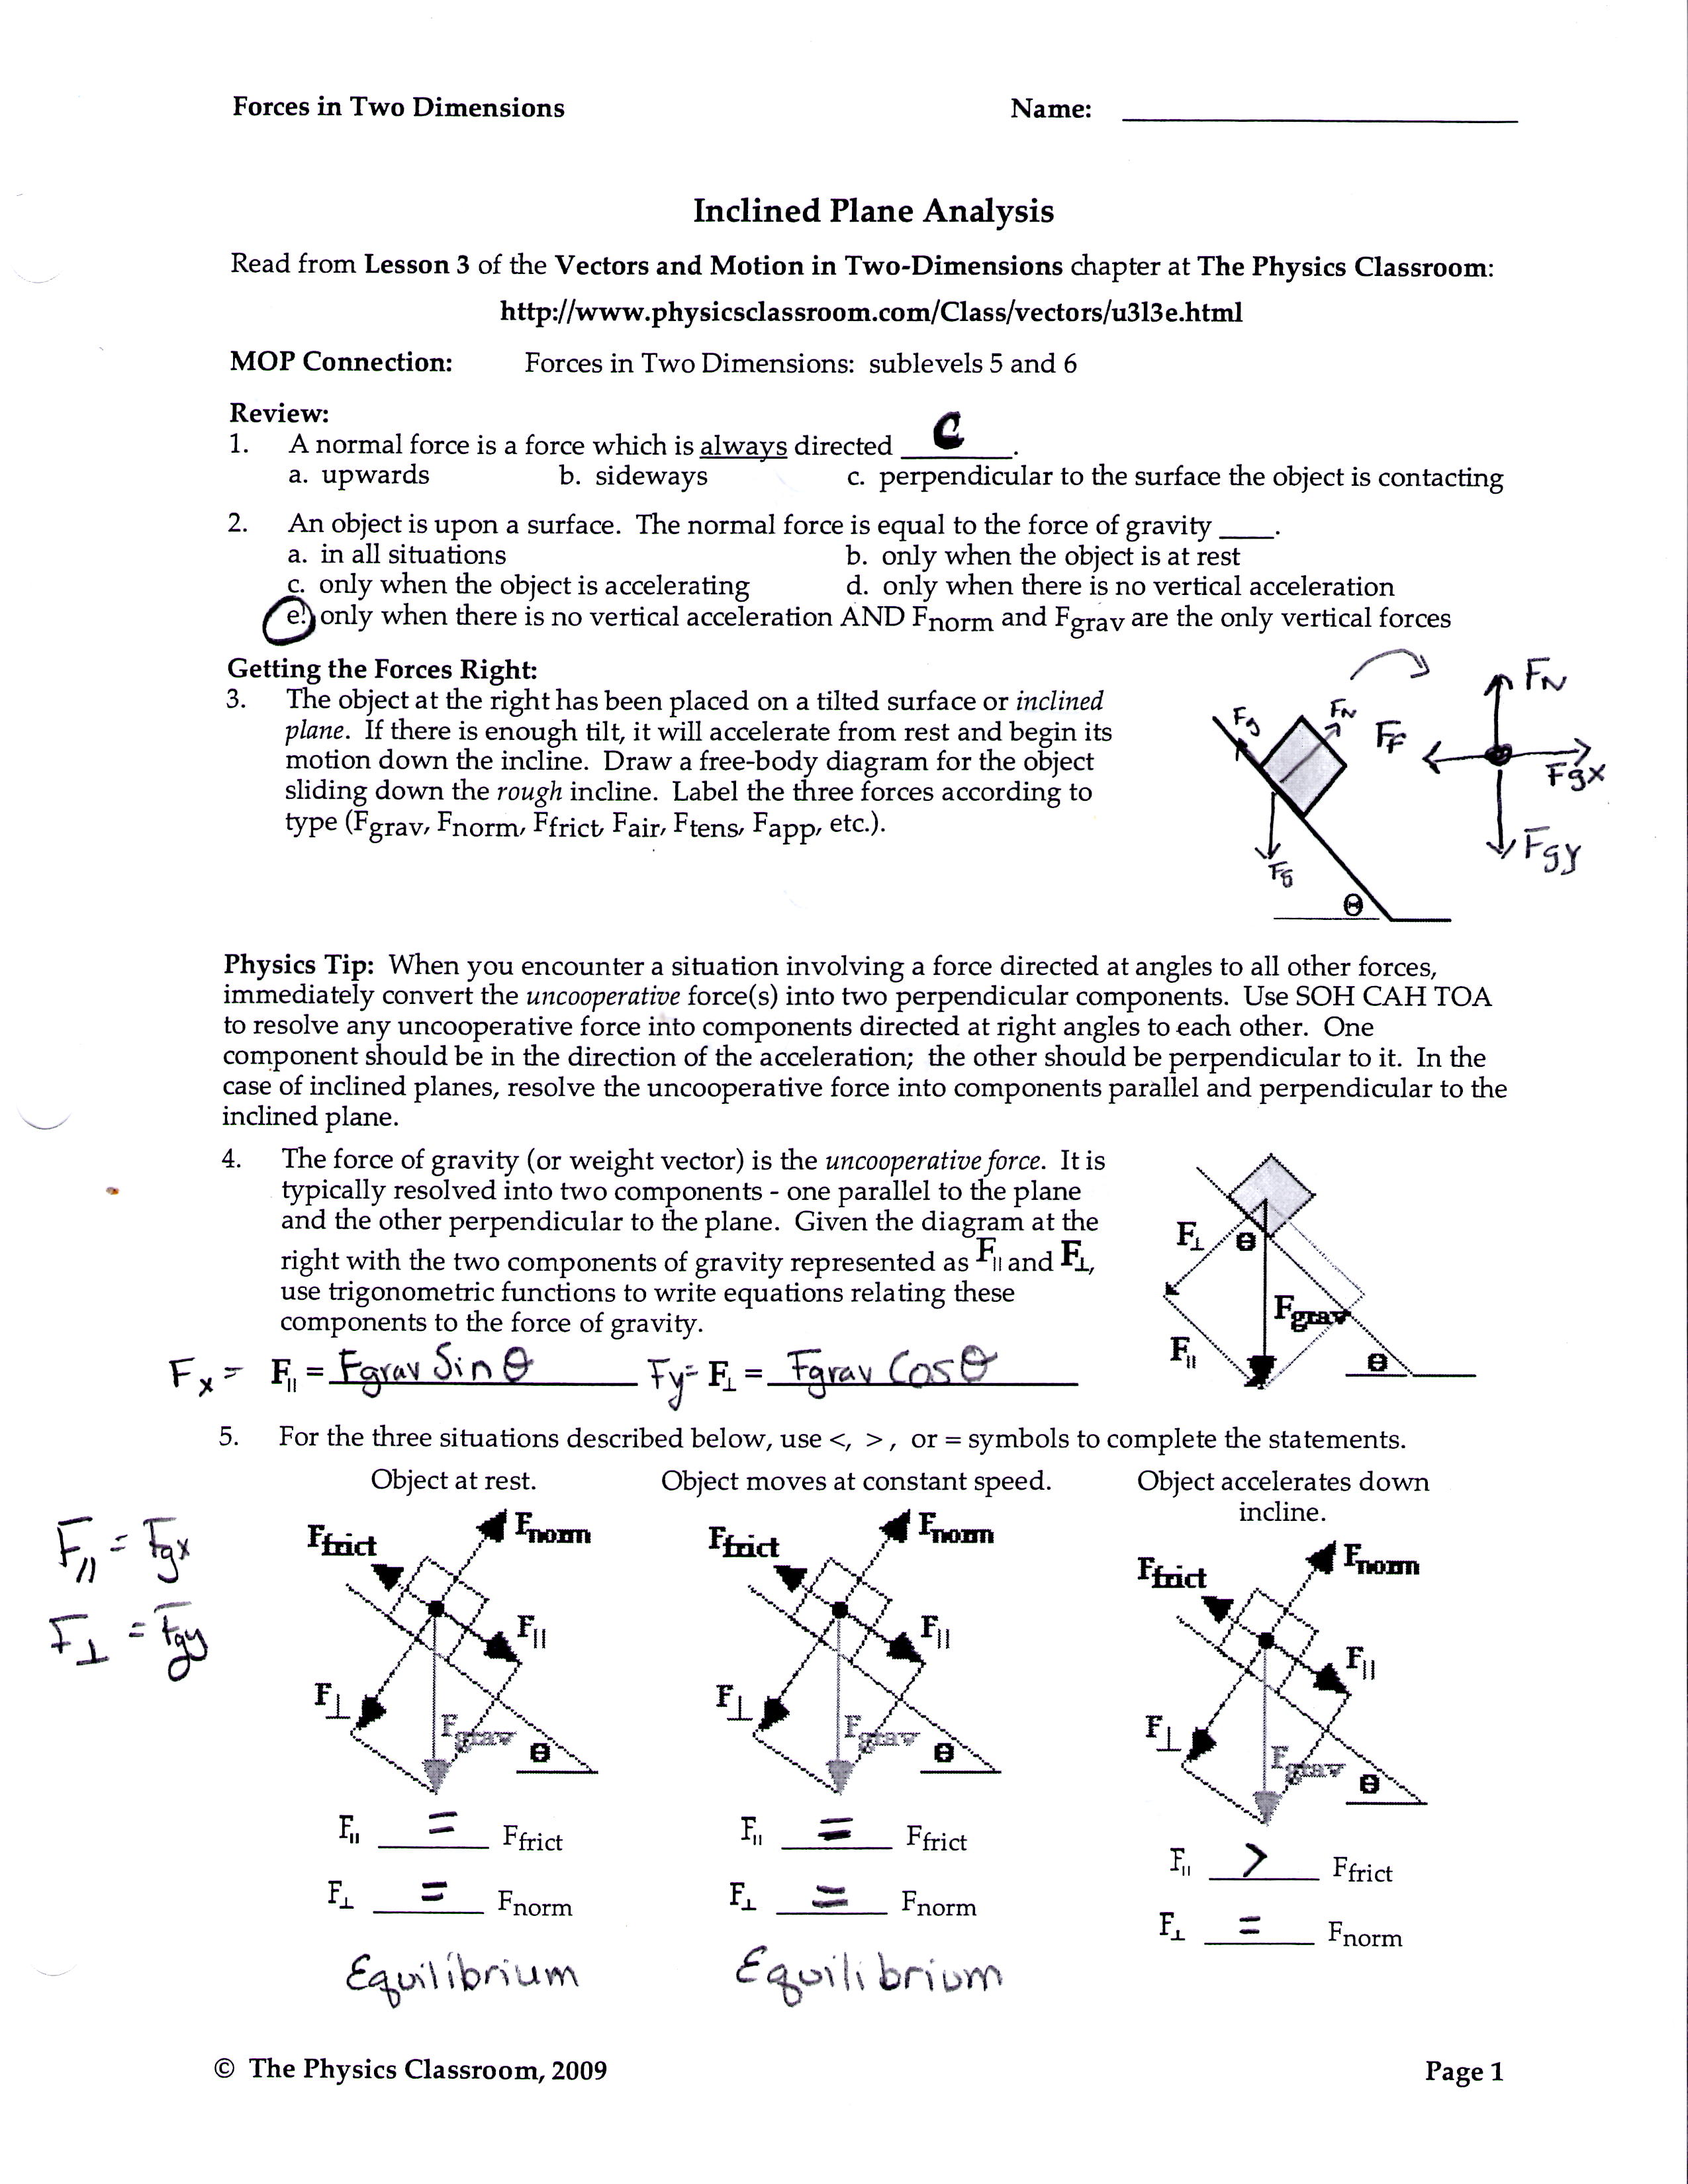 Friction worksheet answers physics classroom